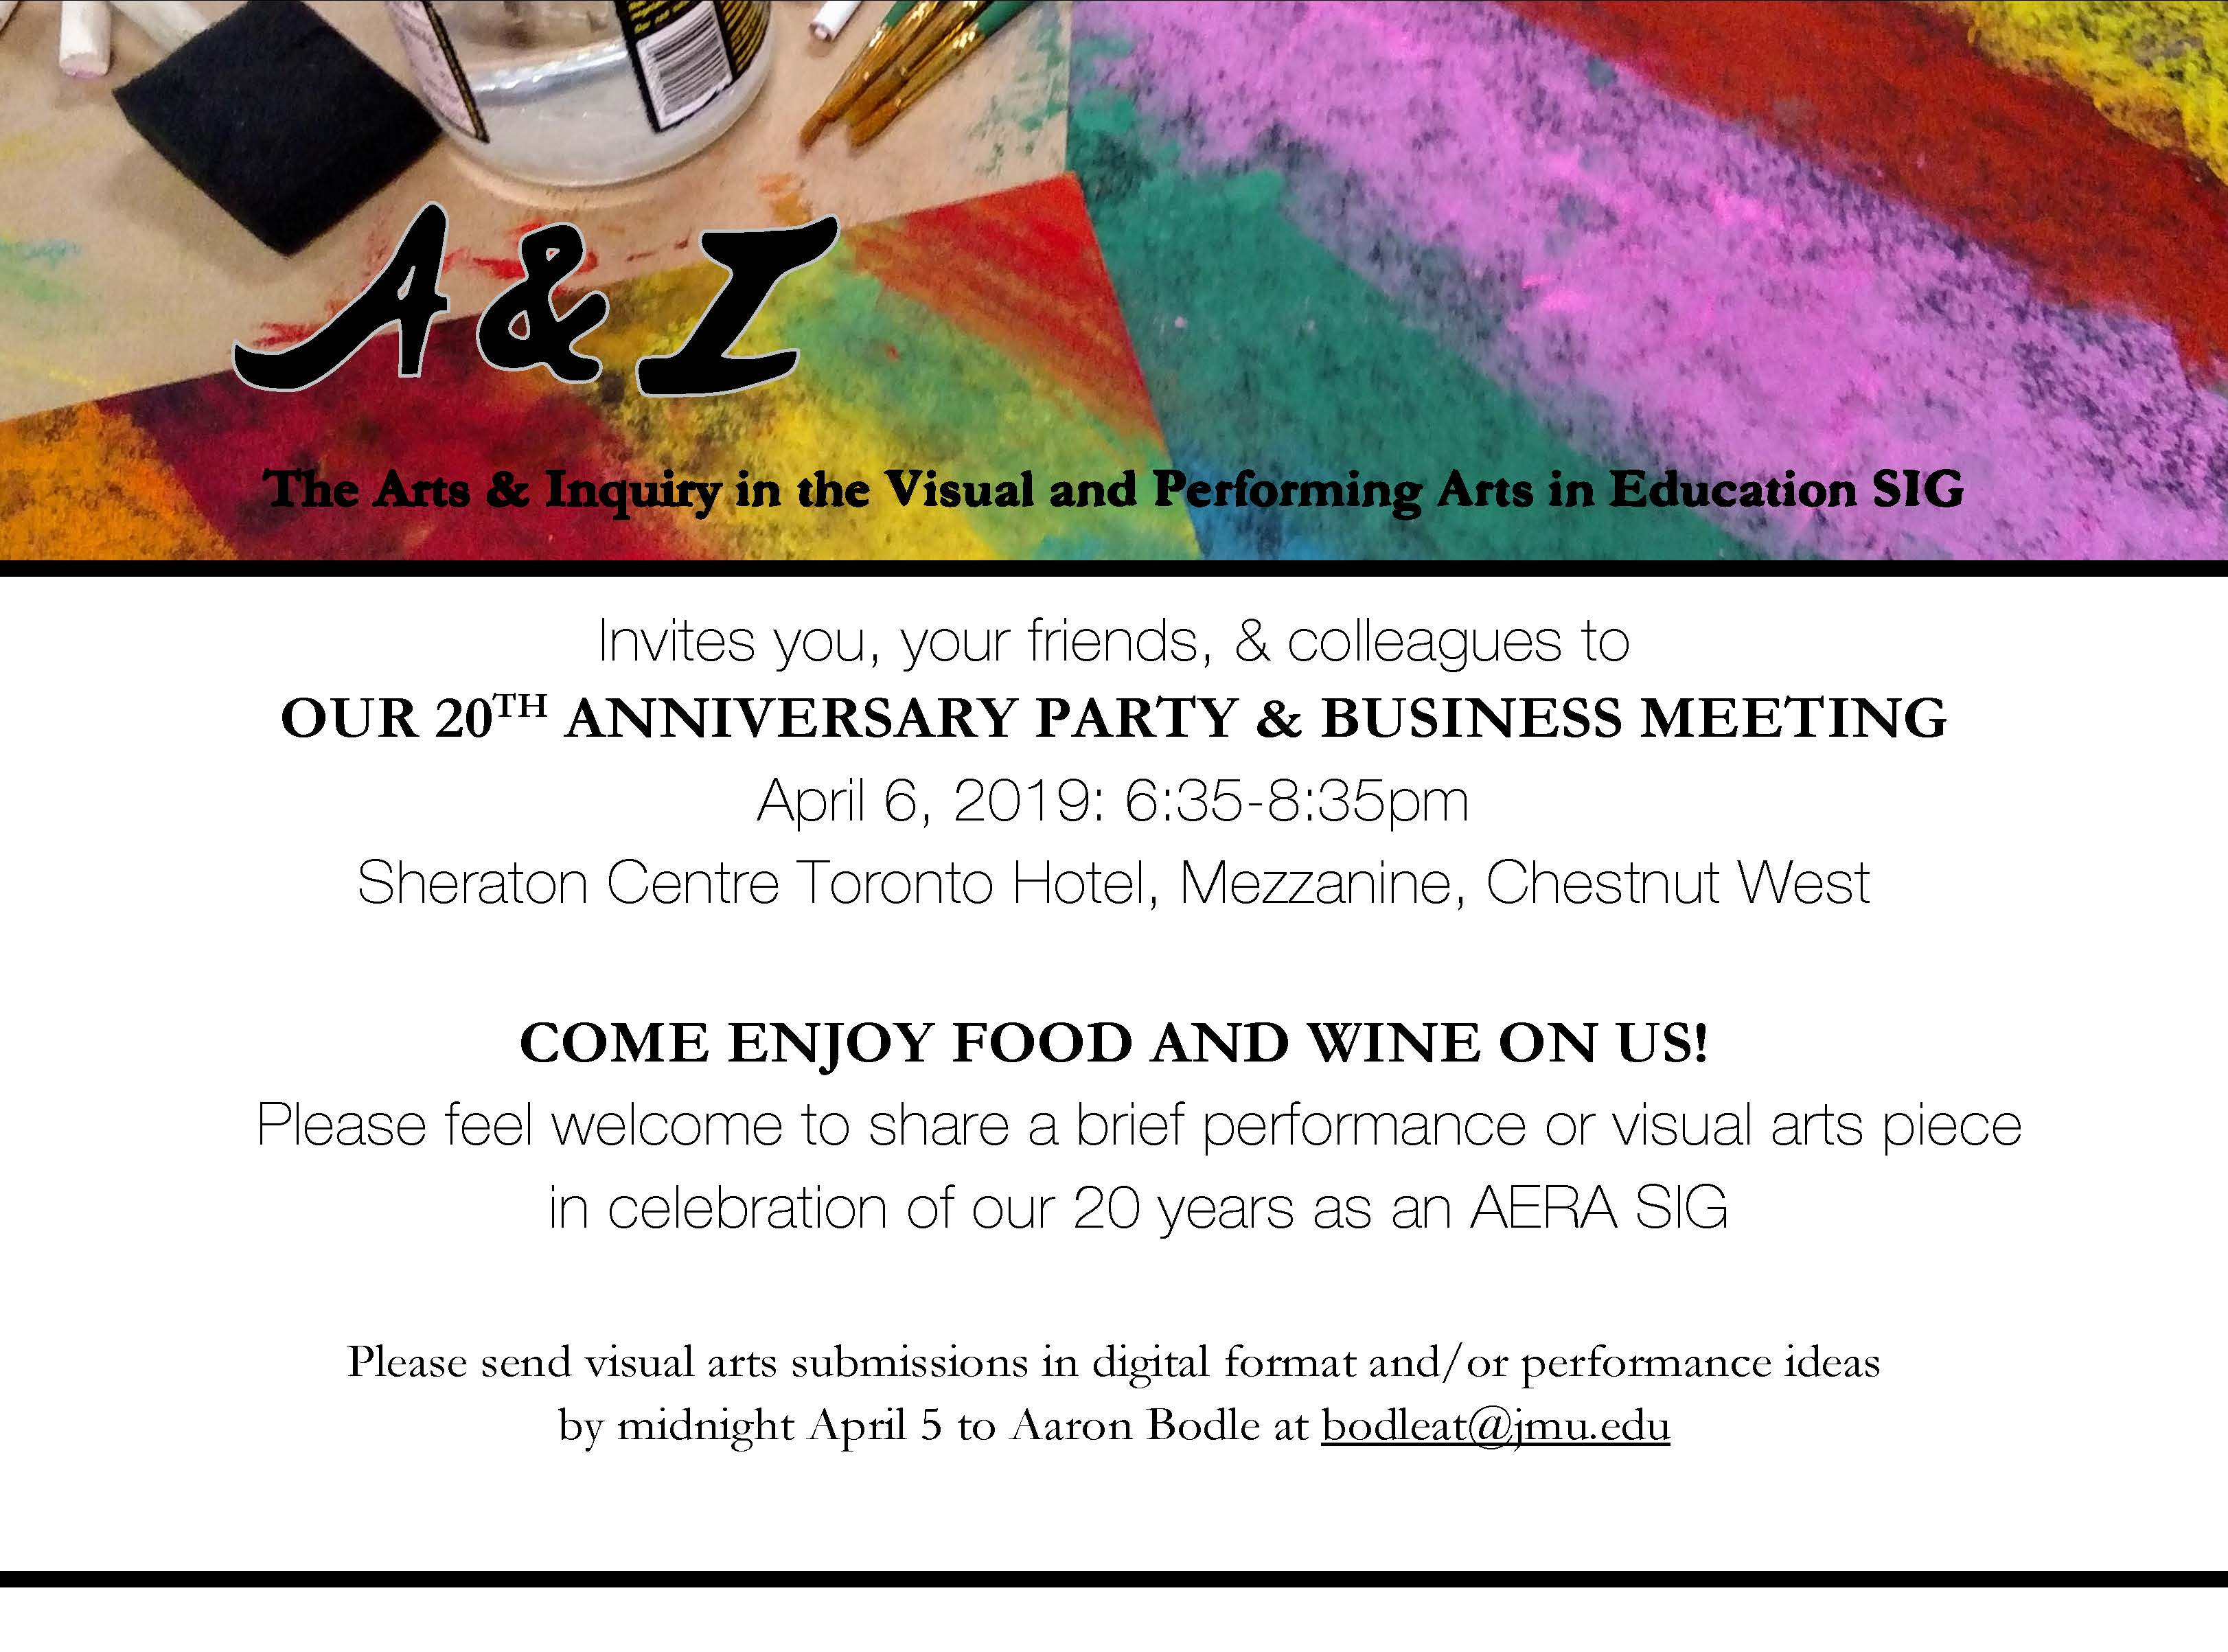 20th Anniversary Party and Business Meeting A&I SIG invite_Page_1636880930242458329